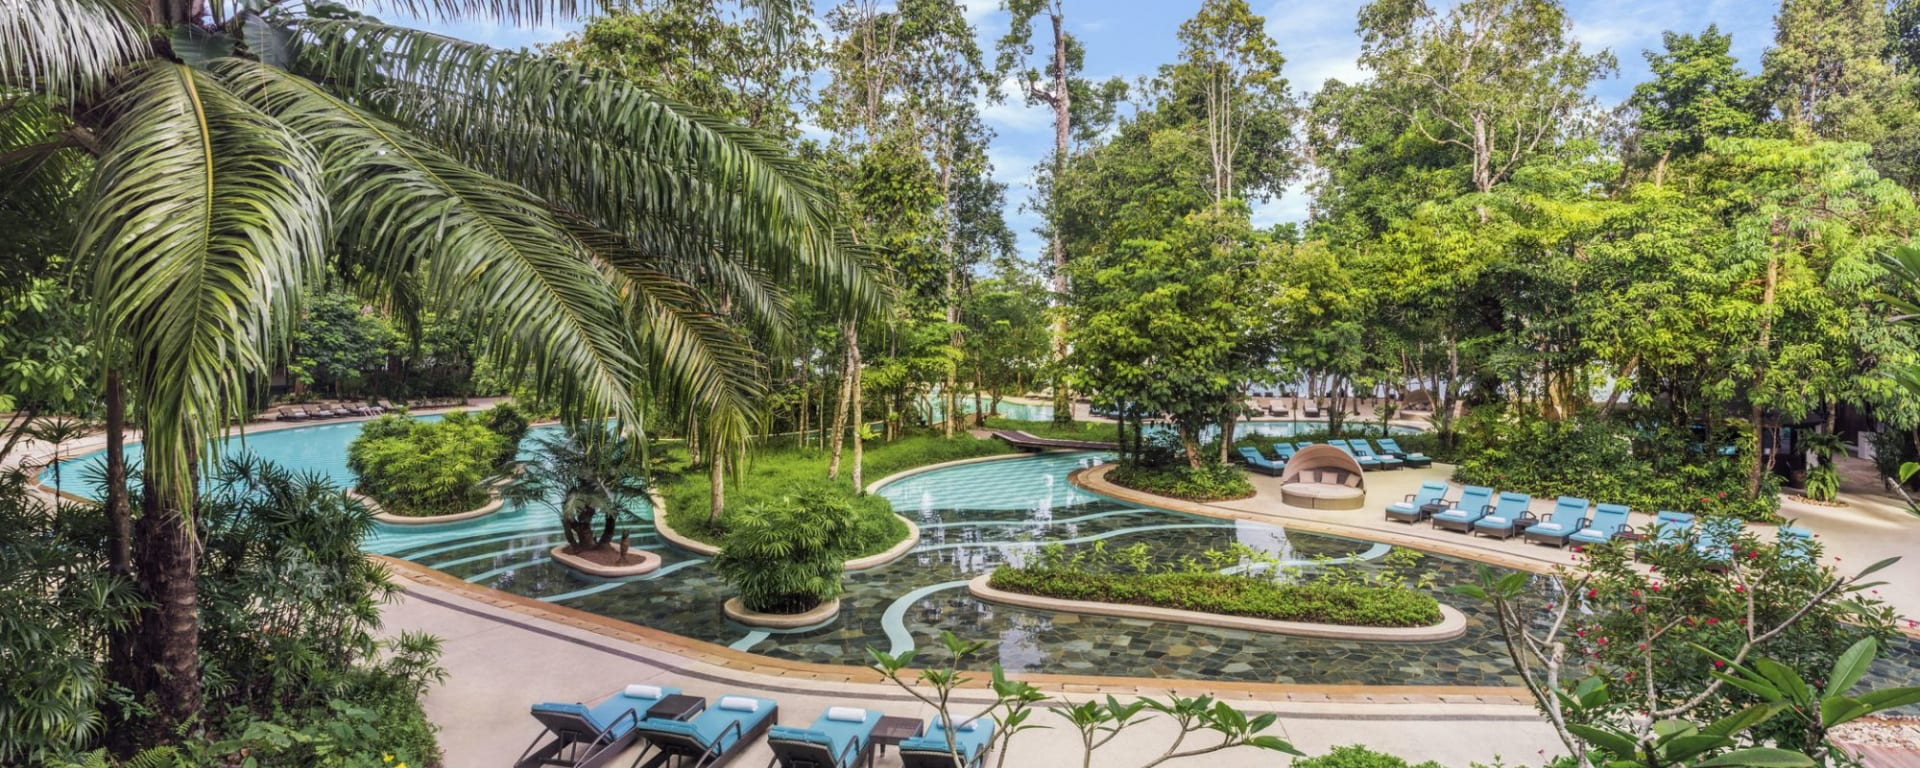 The Andaman à Langkawi: Landscaped swimming pool with sun beds